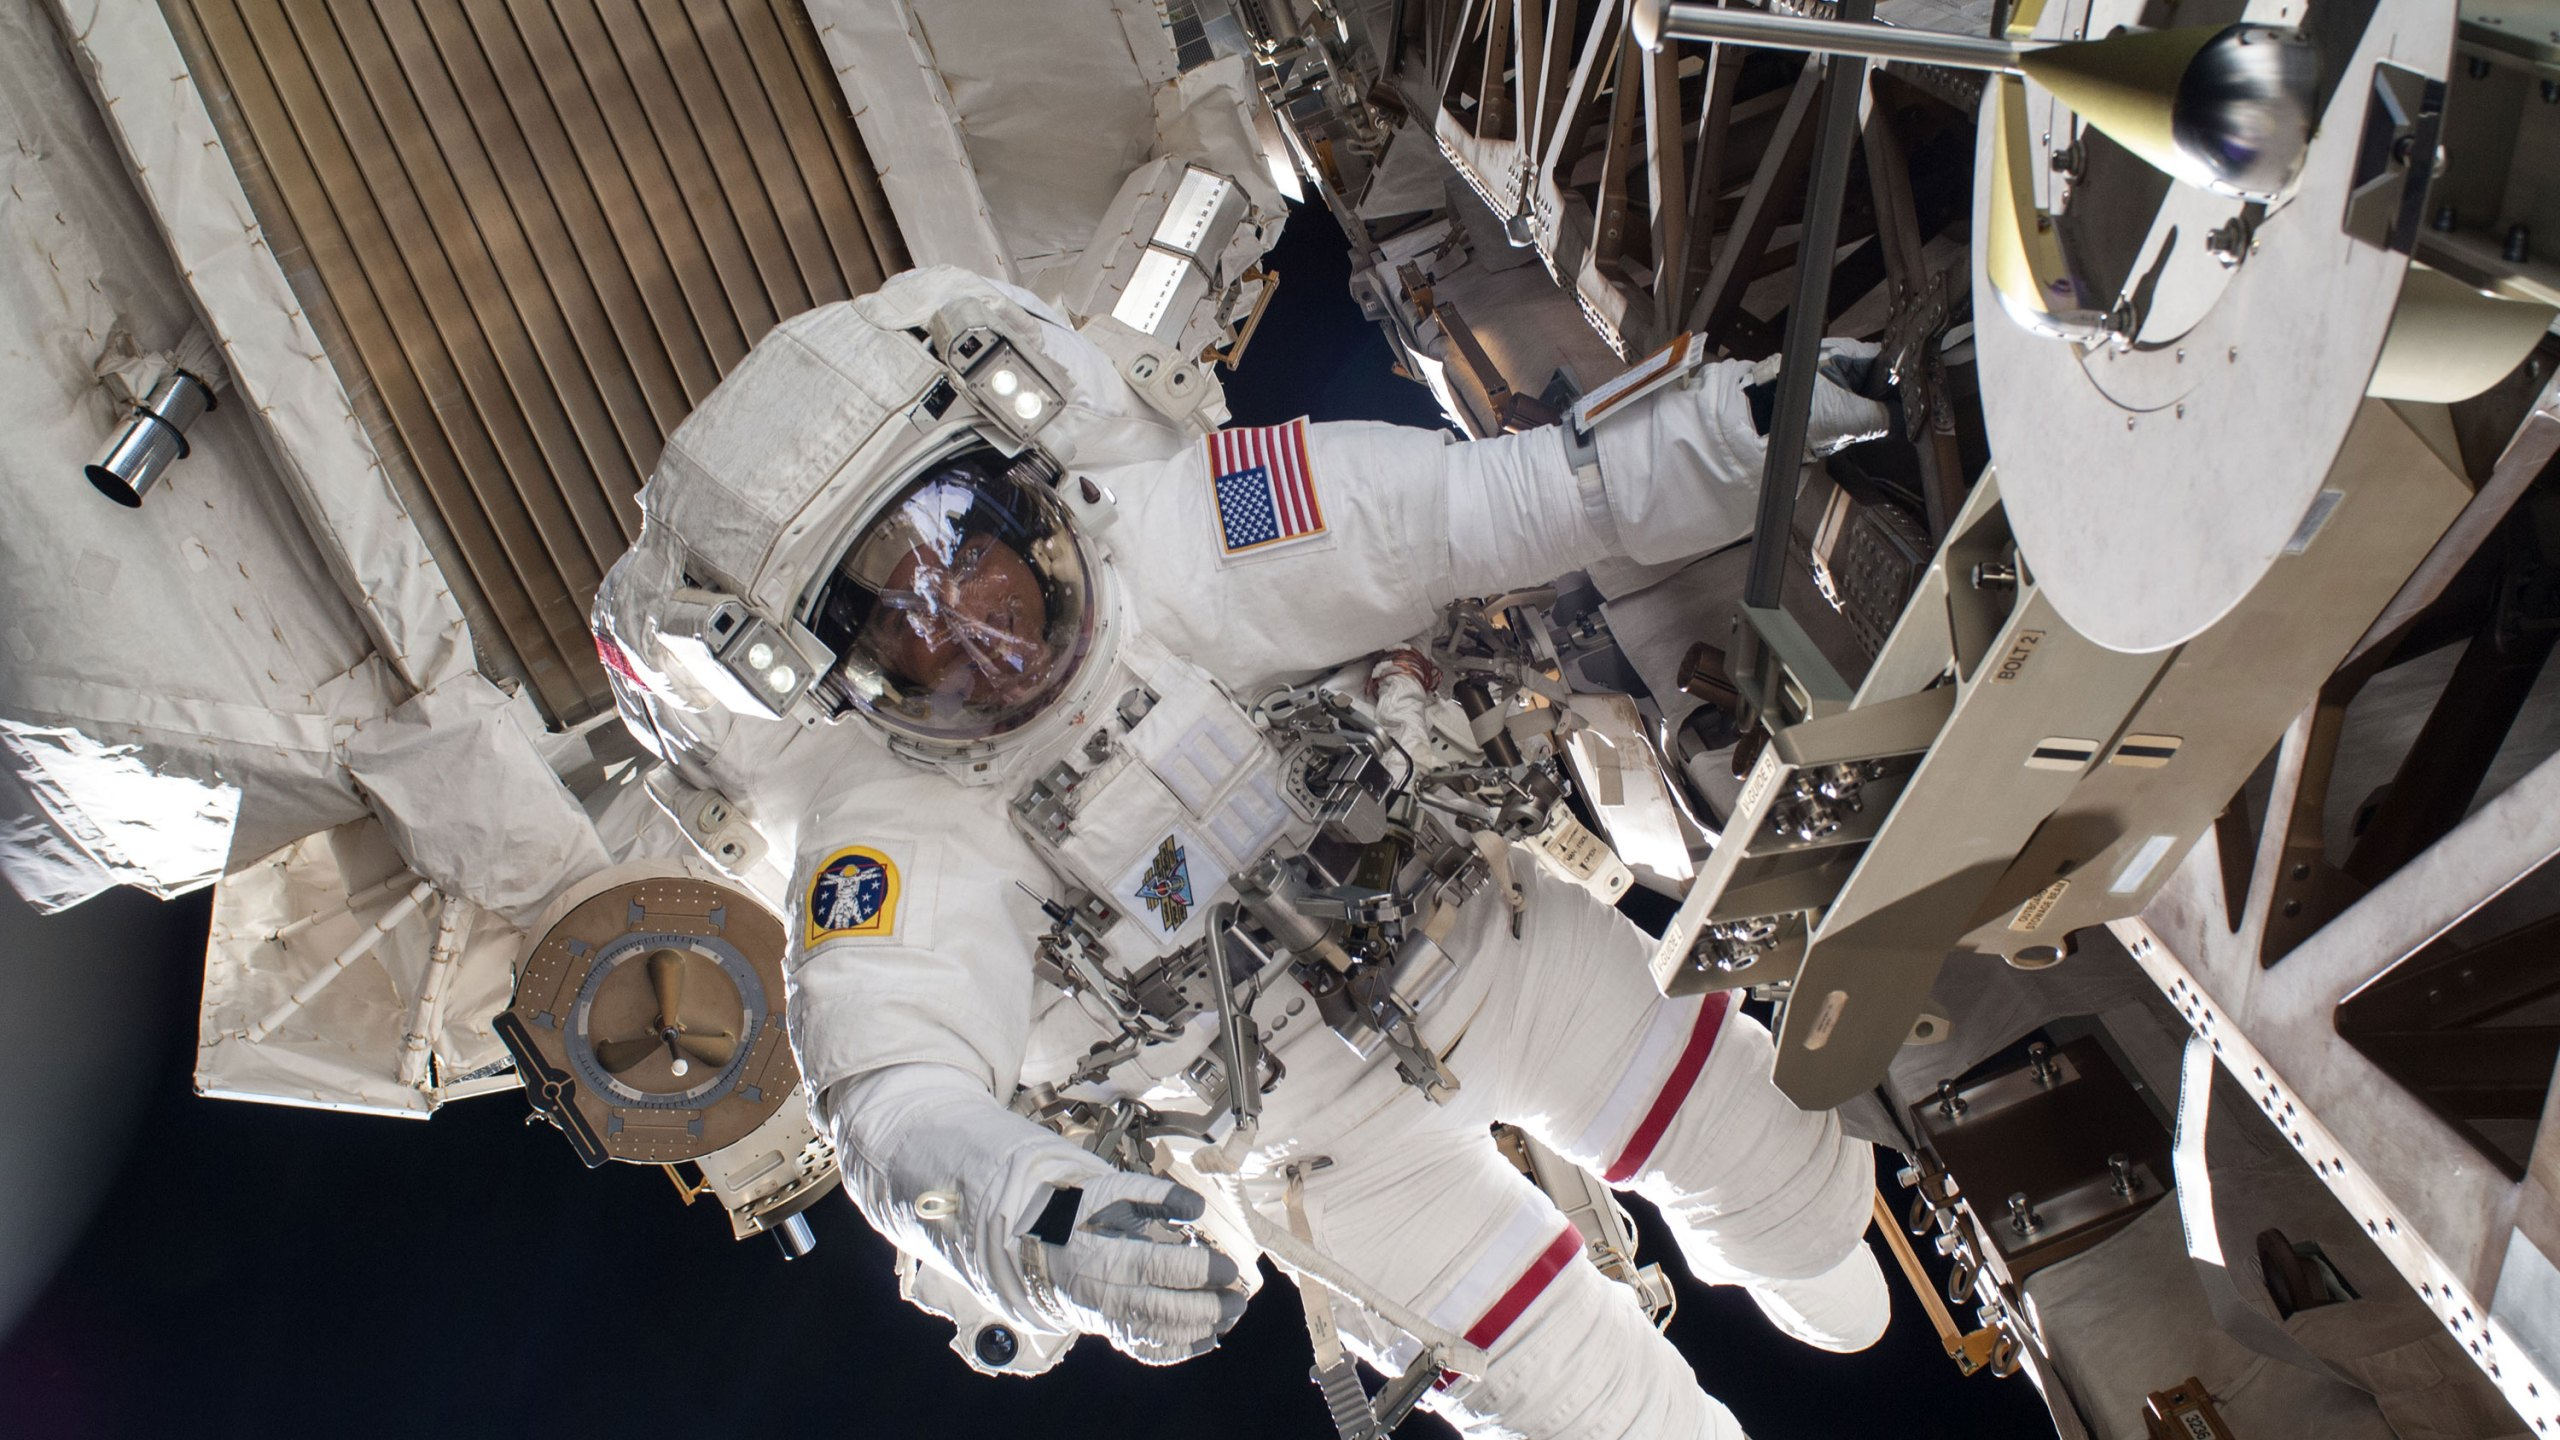 NASA astronauts Chris Cassidy and Robert Behnken began a spacewalk outside of the International Space Station to replace lithium ion batteries for one of the station's power channels On July 1, 2020. (NASA via CNN Wire)